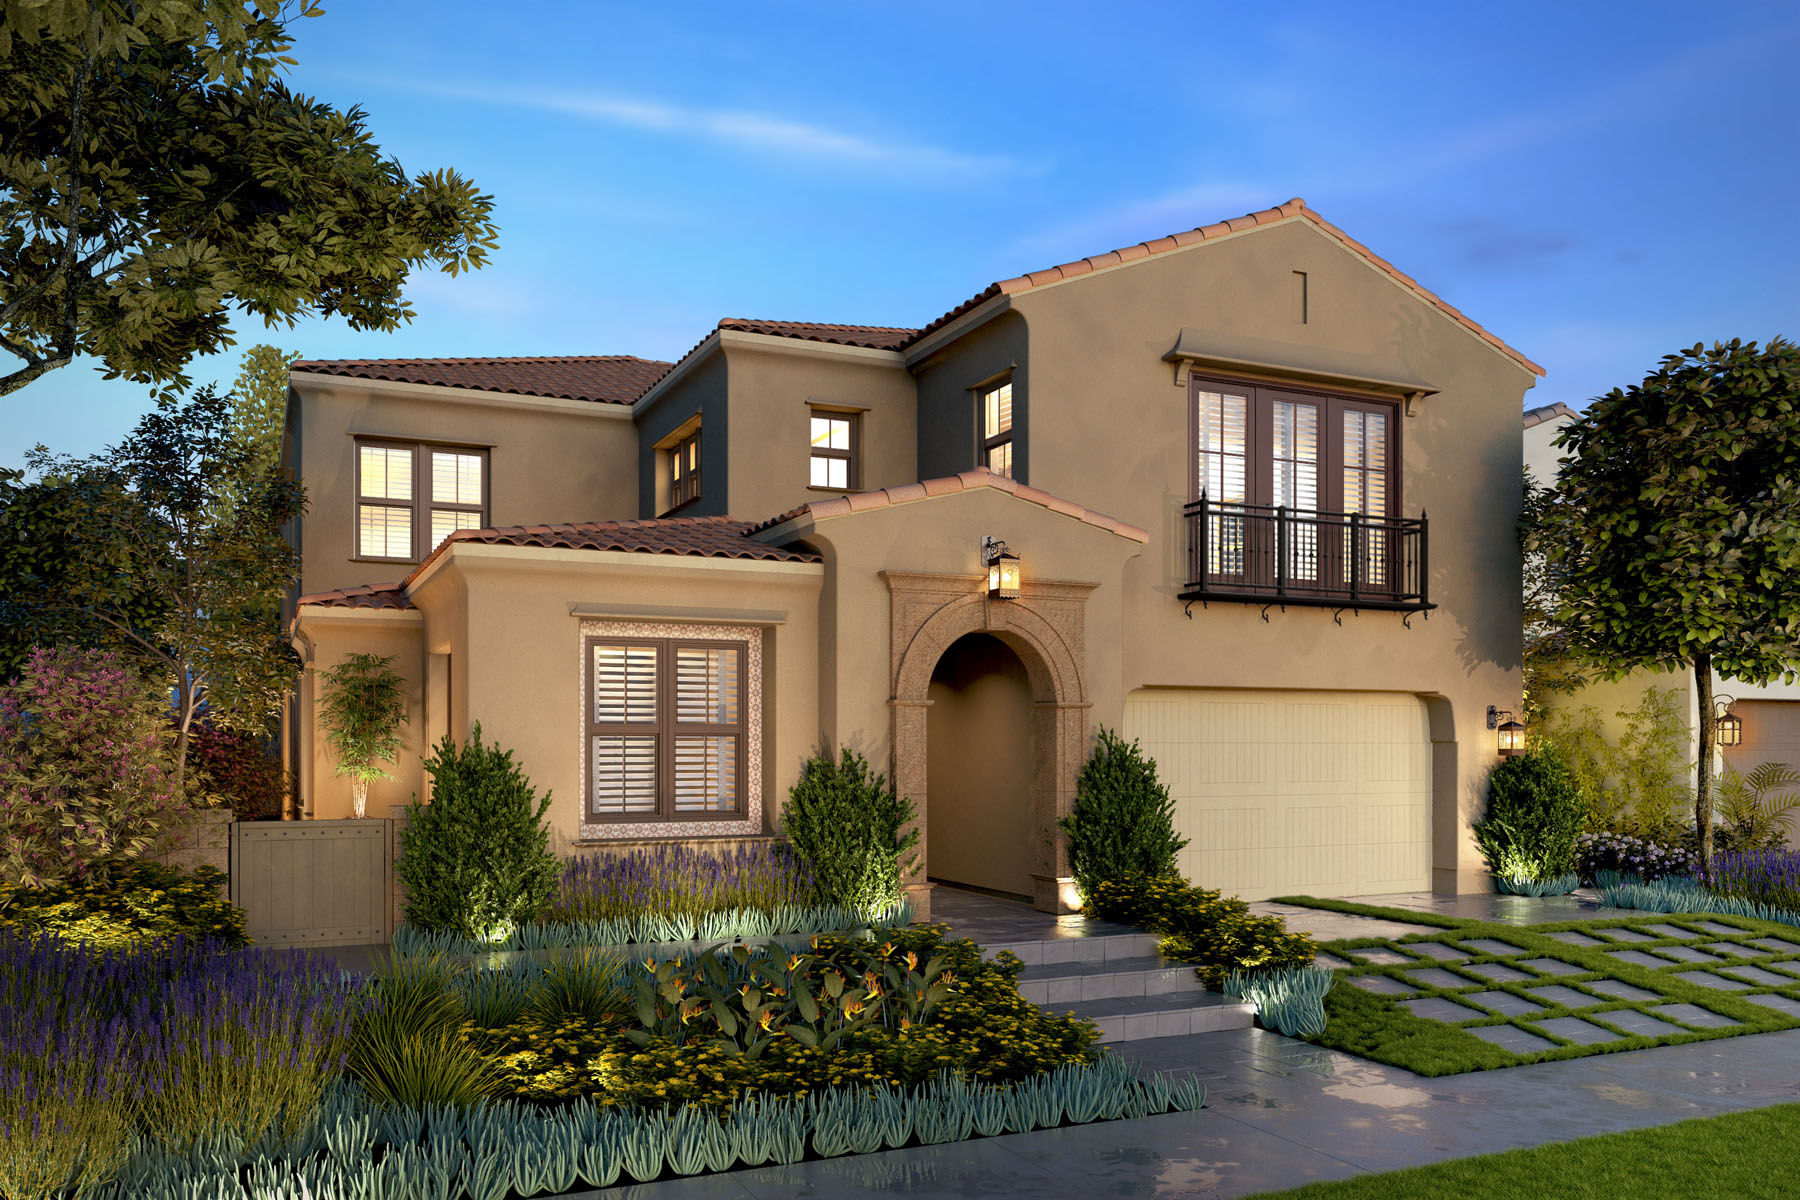 irvine new homes, new irvine homes, la cresta, brookfield